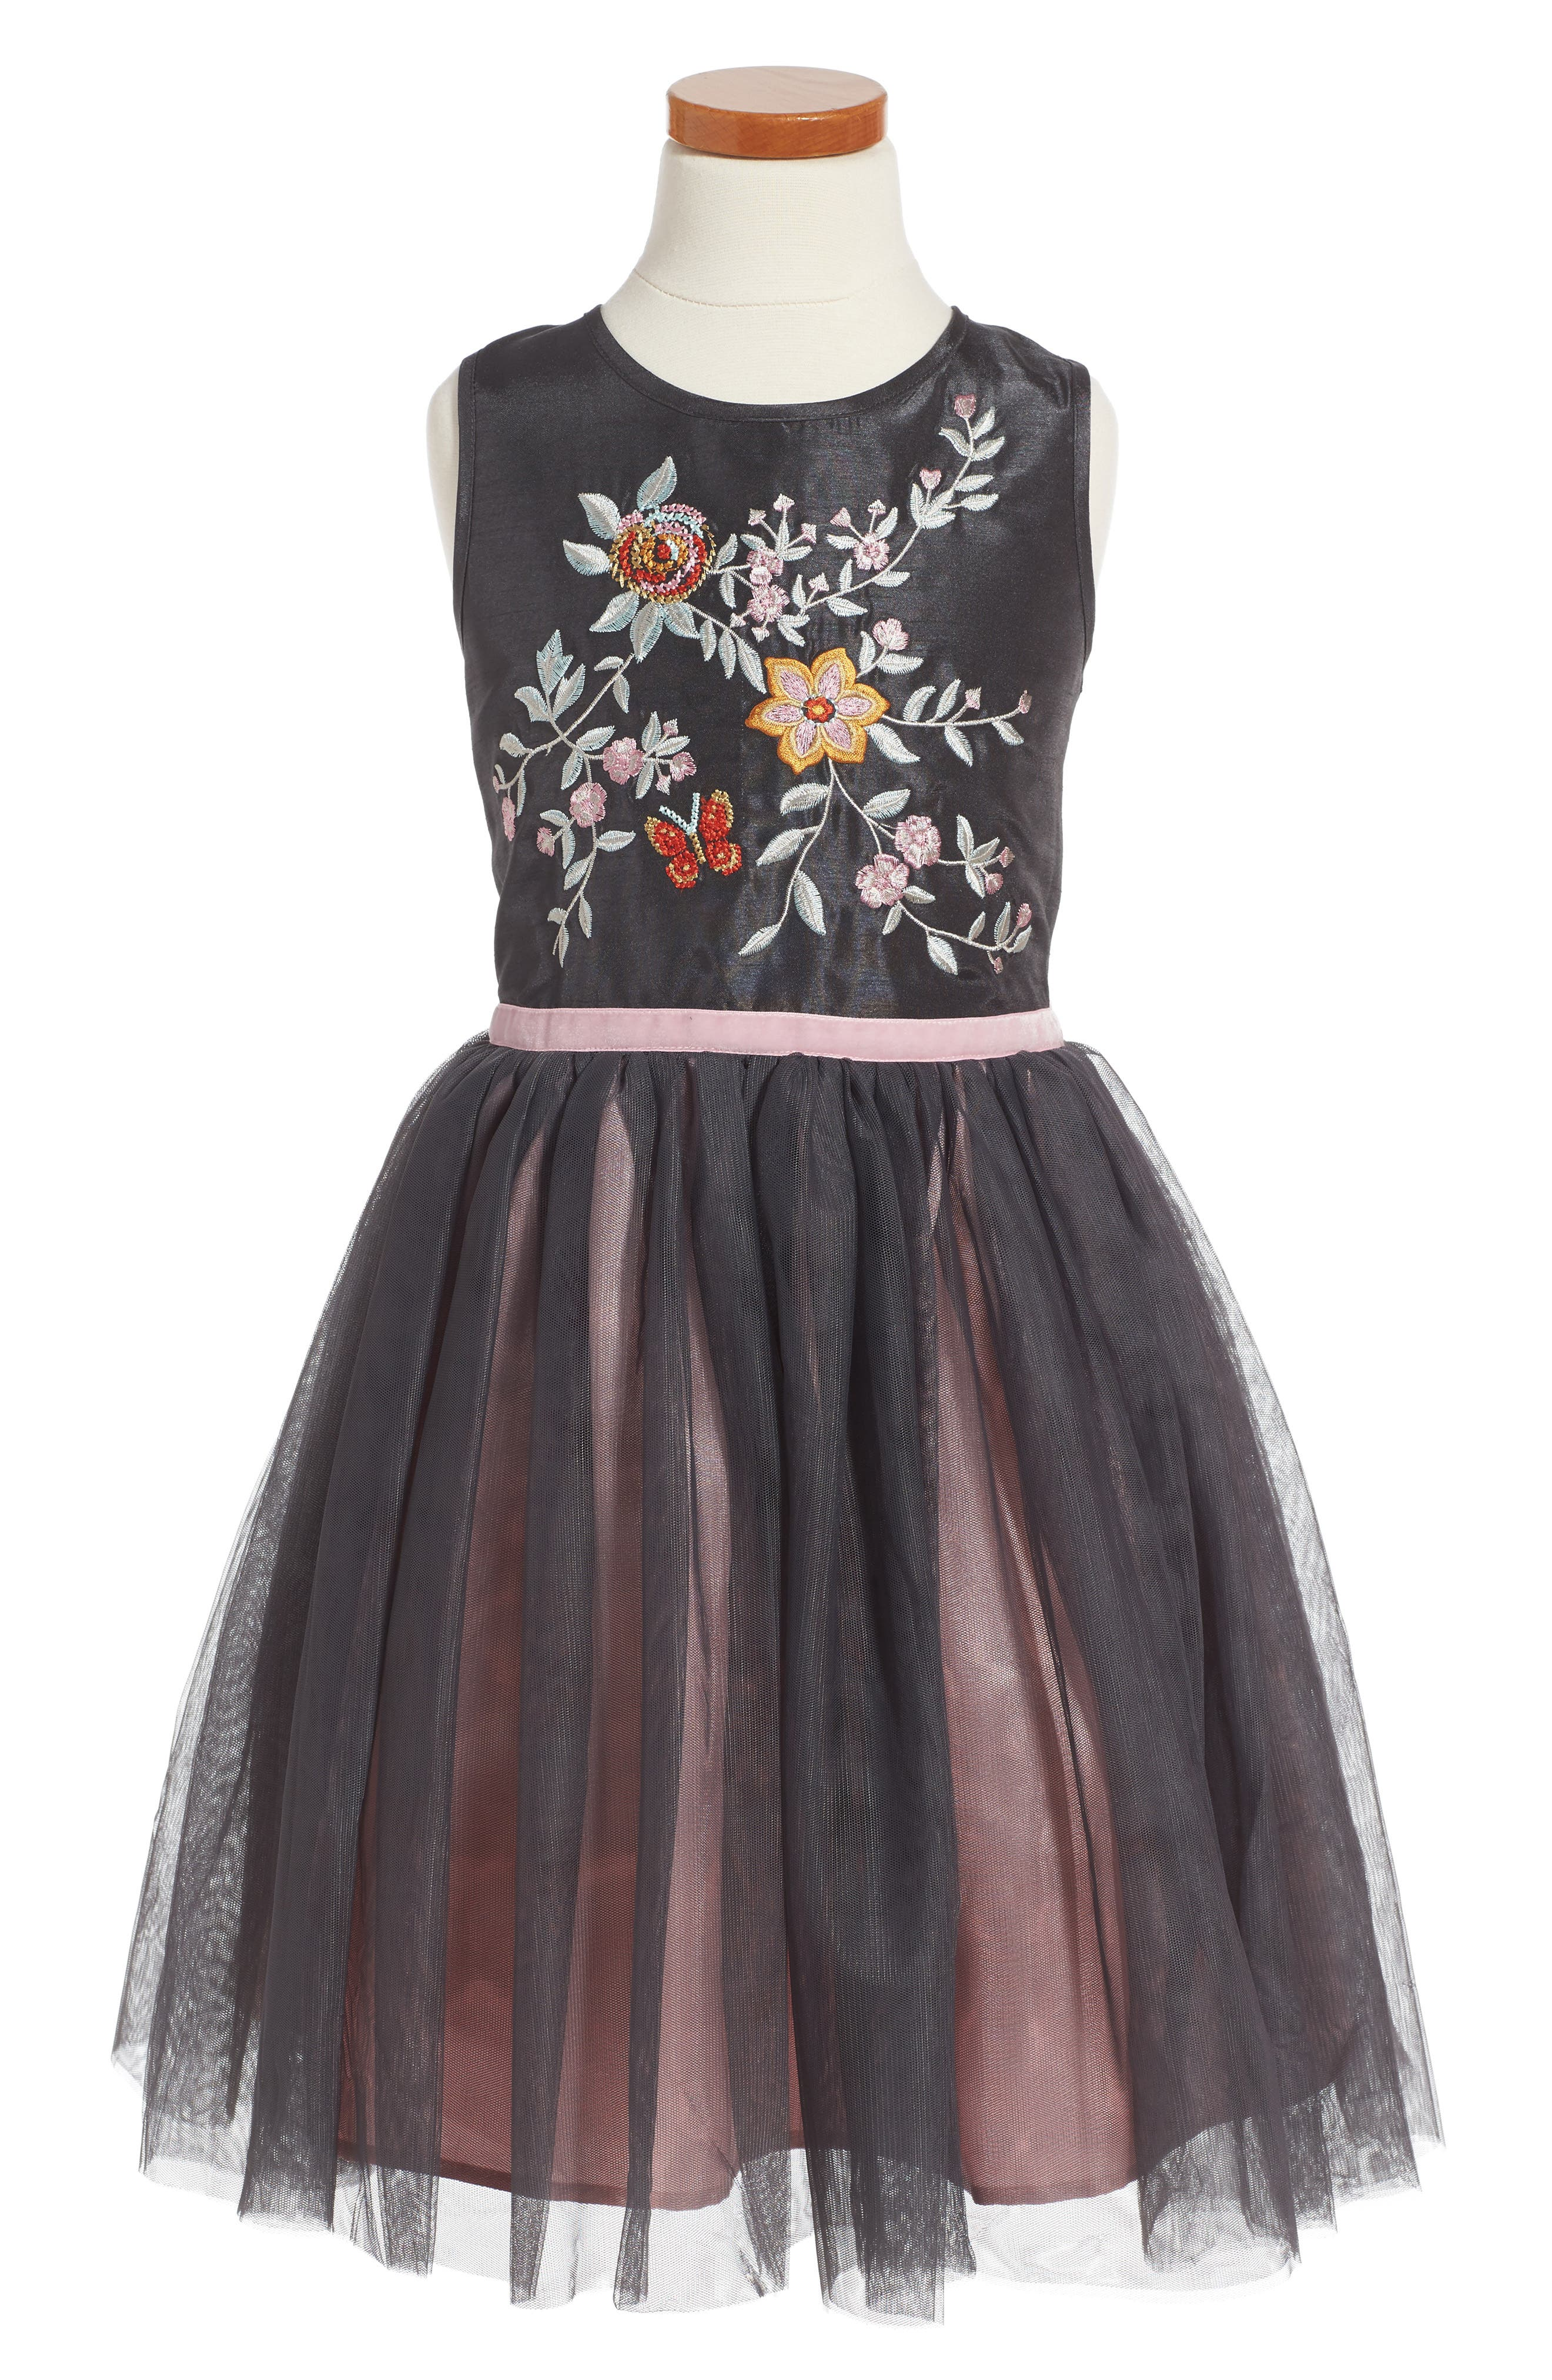 Alternate Image 1 Selected - Zunie Embroidered Fit & Flare Dress (Toddler Girls, Little Girls & Big Girls)